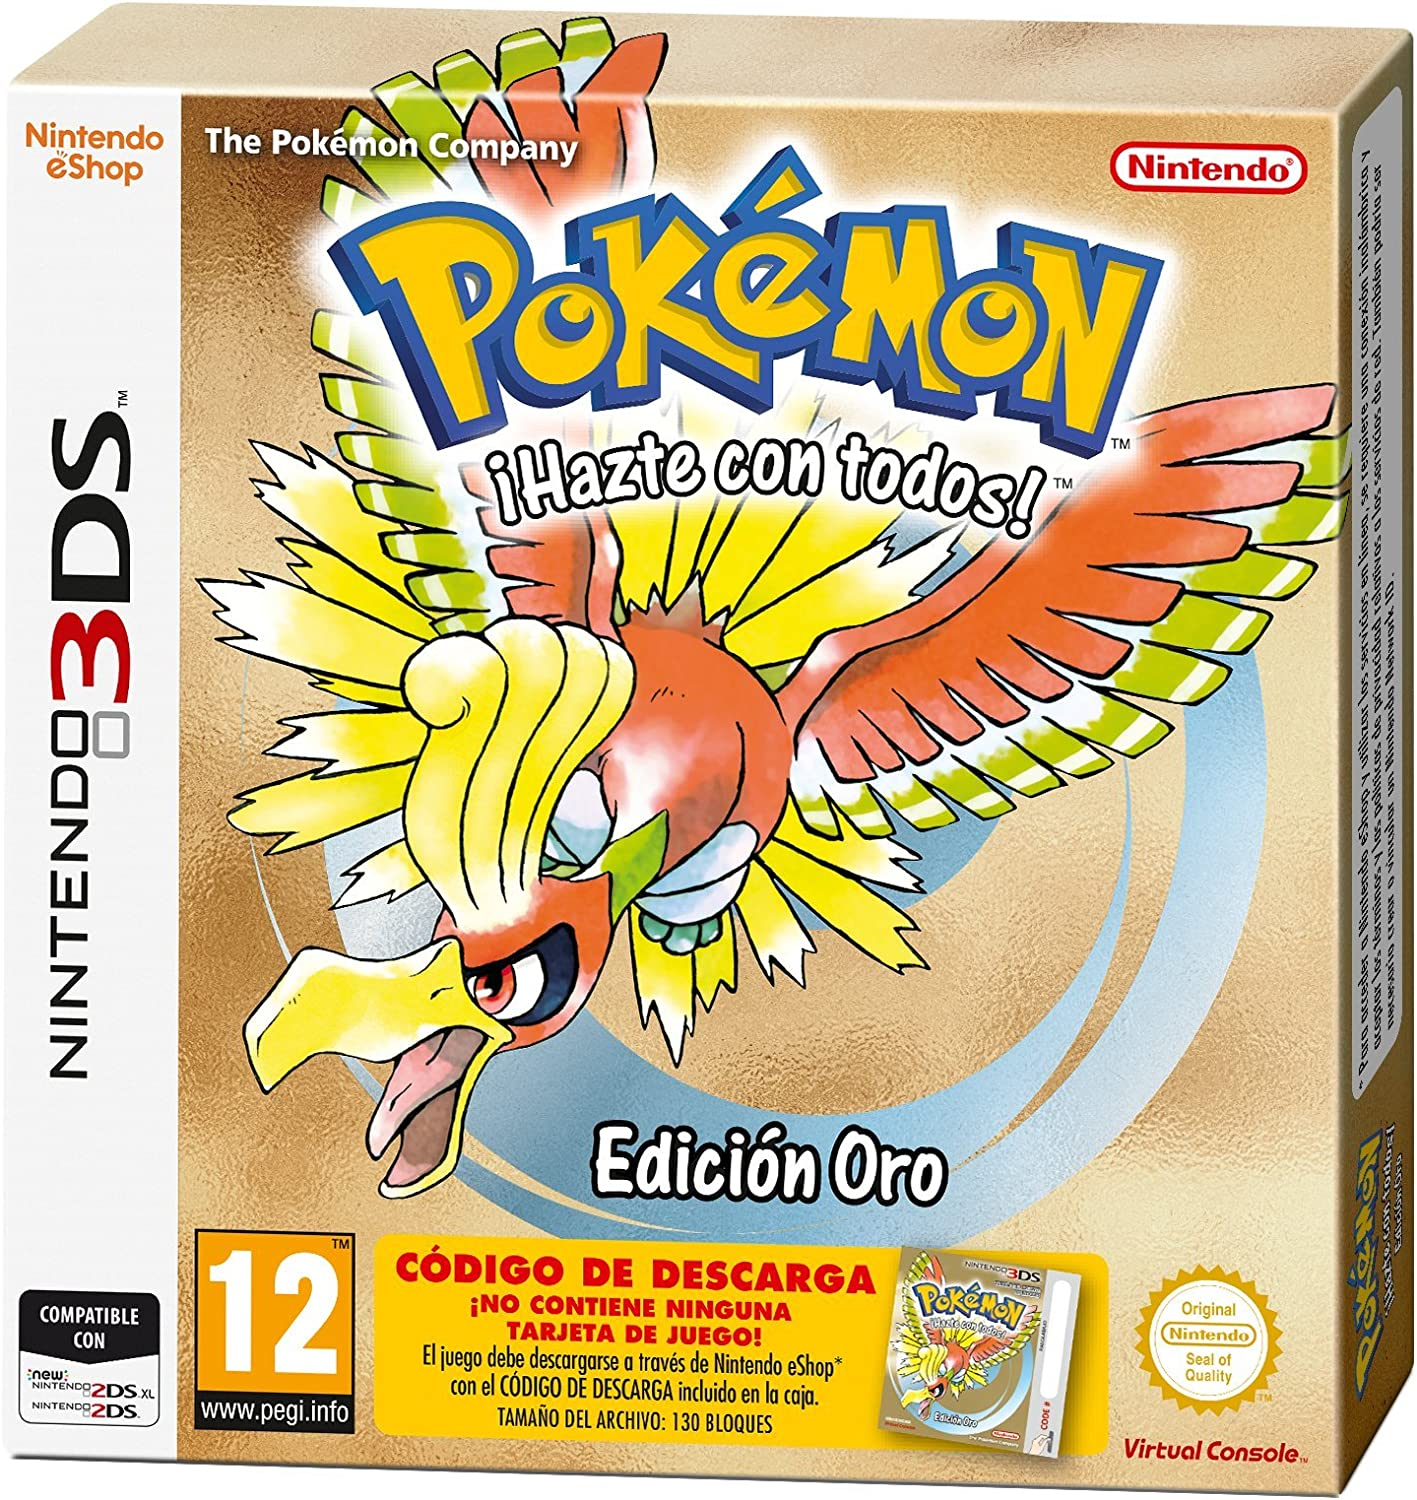 Pokémon: Gold Edition